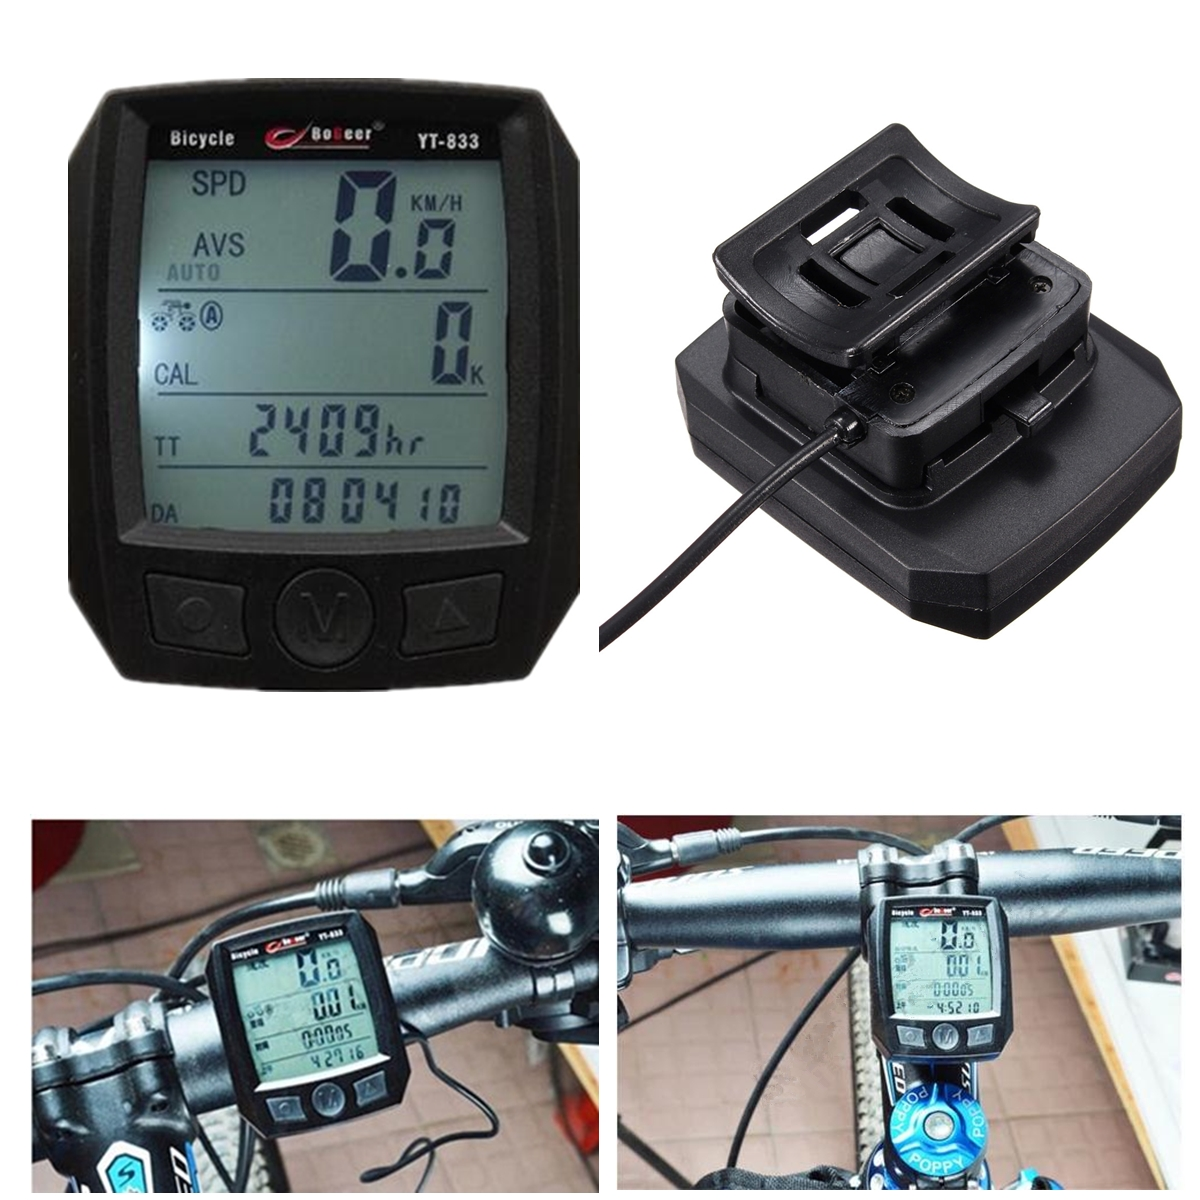 fahrradcomputer fahrradtacho tachometer rad bike fahrrad. Black Bedroom Furniture Sets. Home Design Ideas